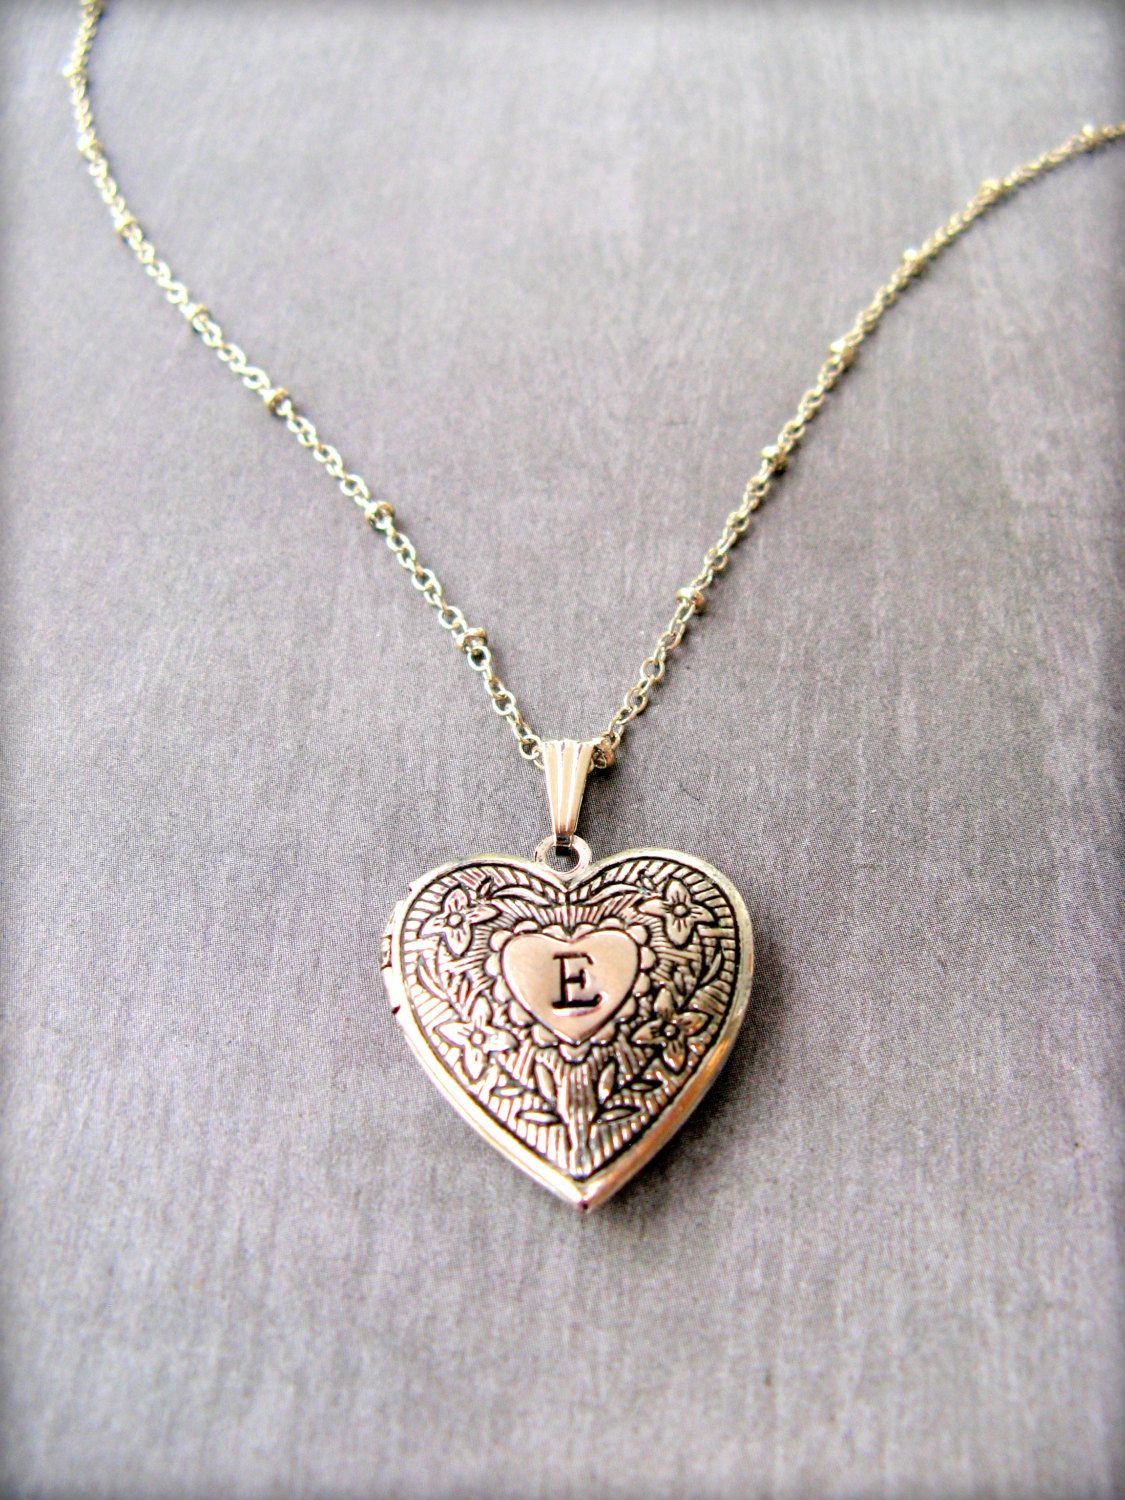 Small Maid of Honor Heart Custom Engraved You are more Loved Heart Locket Necklace